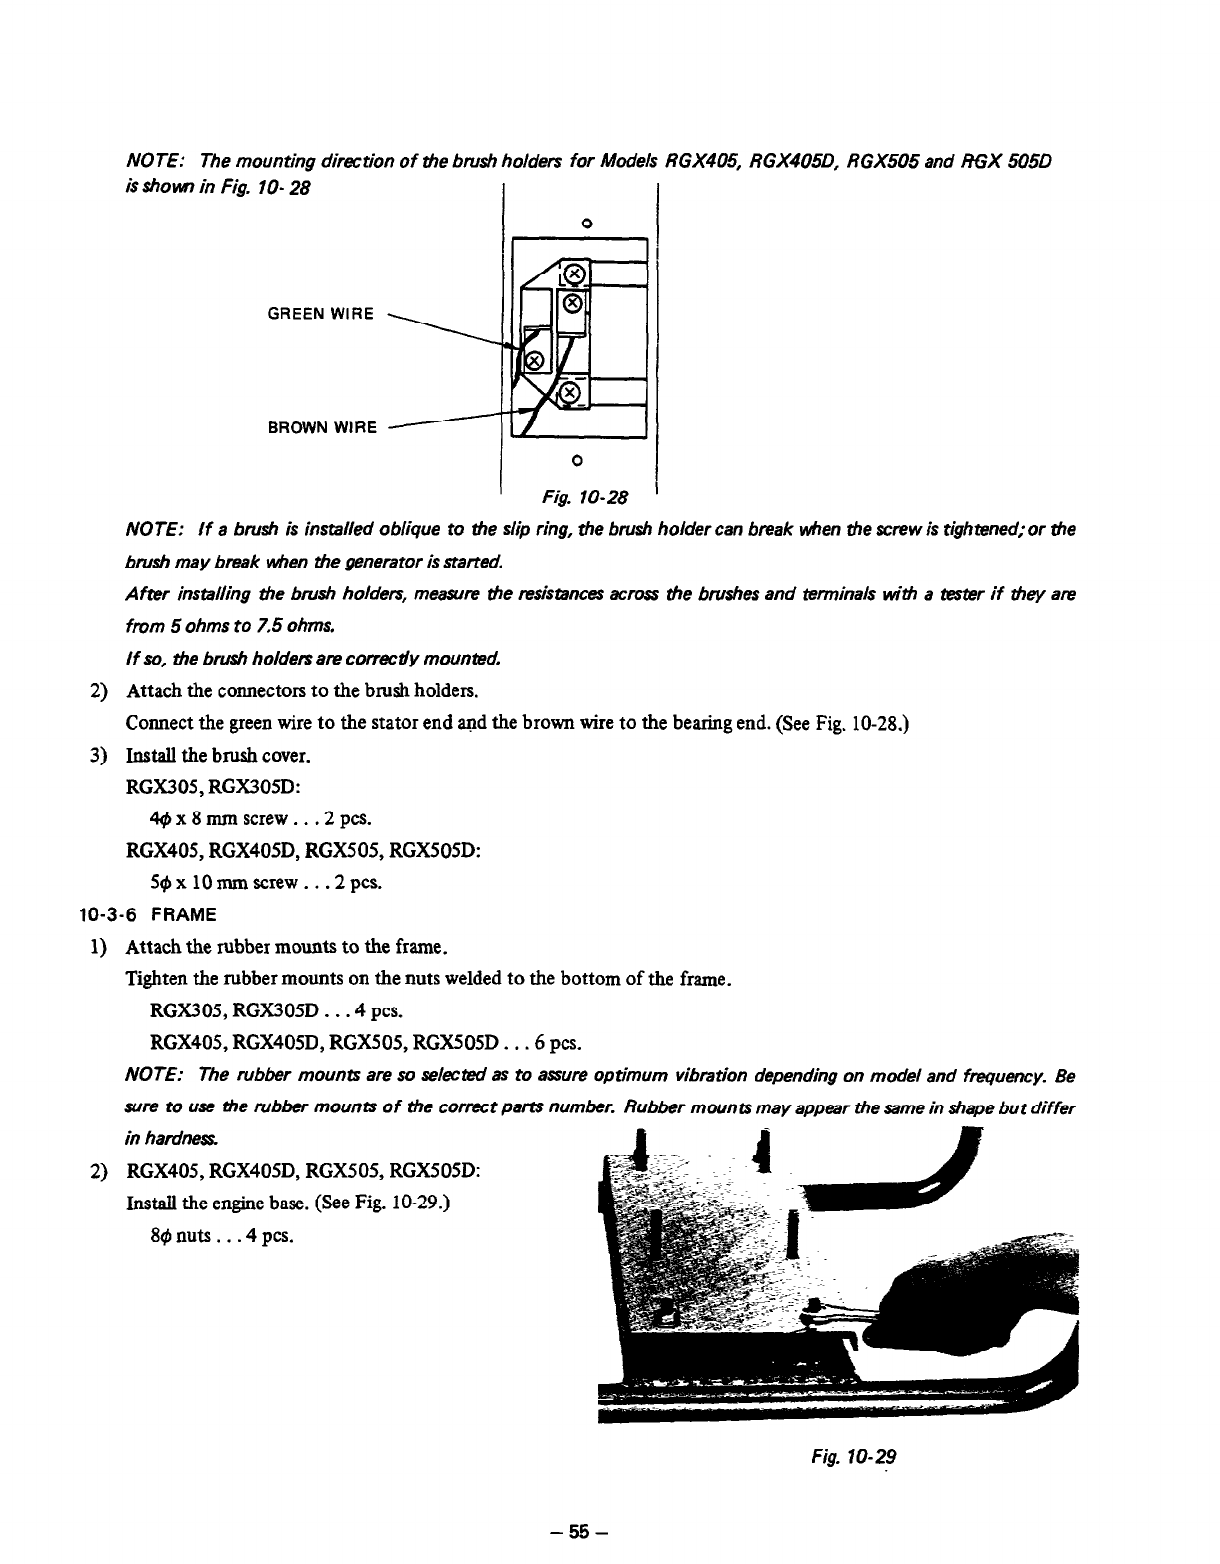 Page 58 of subaru robin power products portable generator rgx405 note the mounting dirmtion of the brush holders for models rgx405 rgx405d rgx505 and rgx 505d asfbconference2016 Choice Image